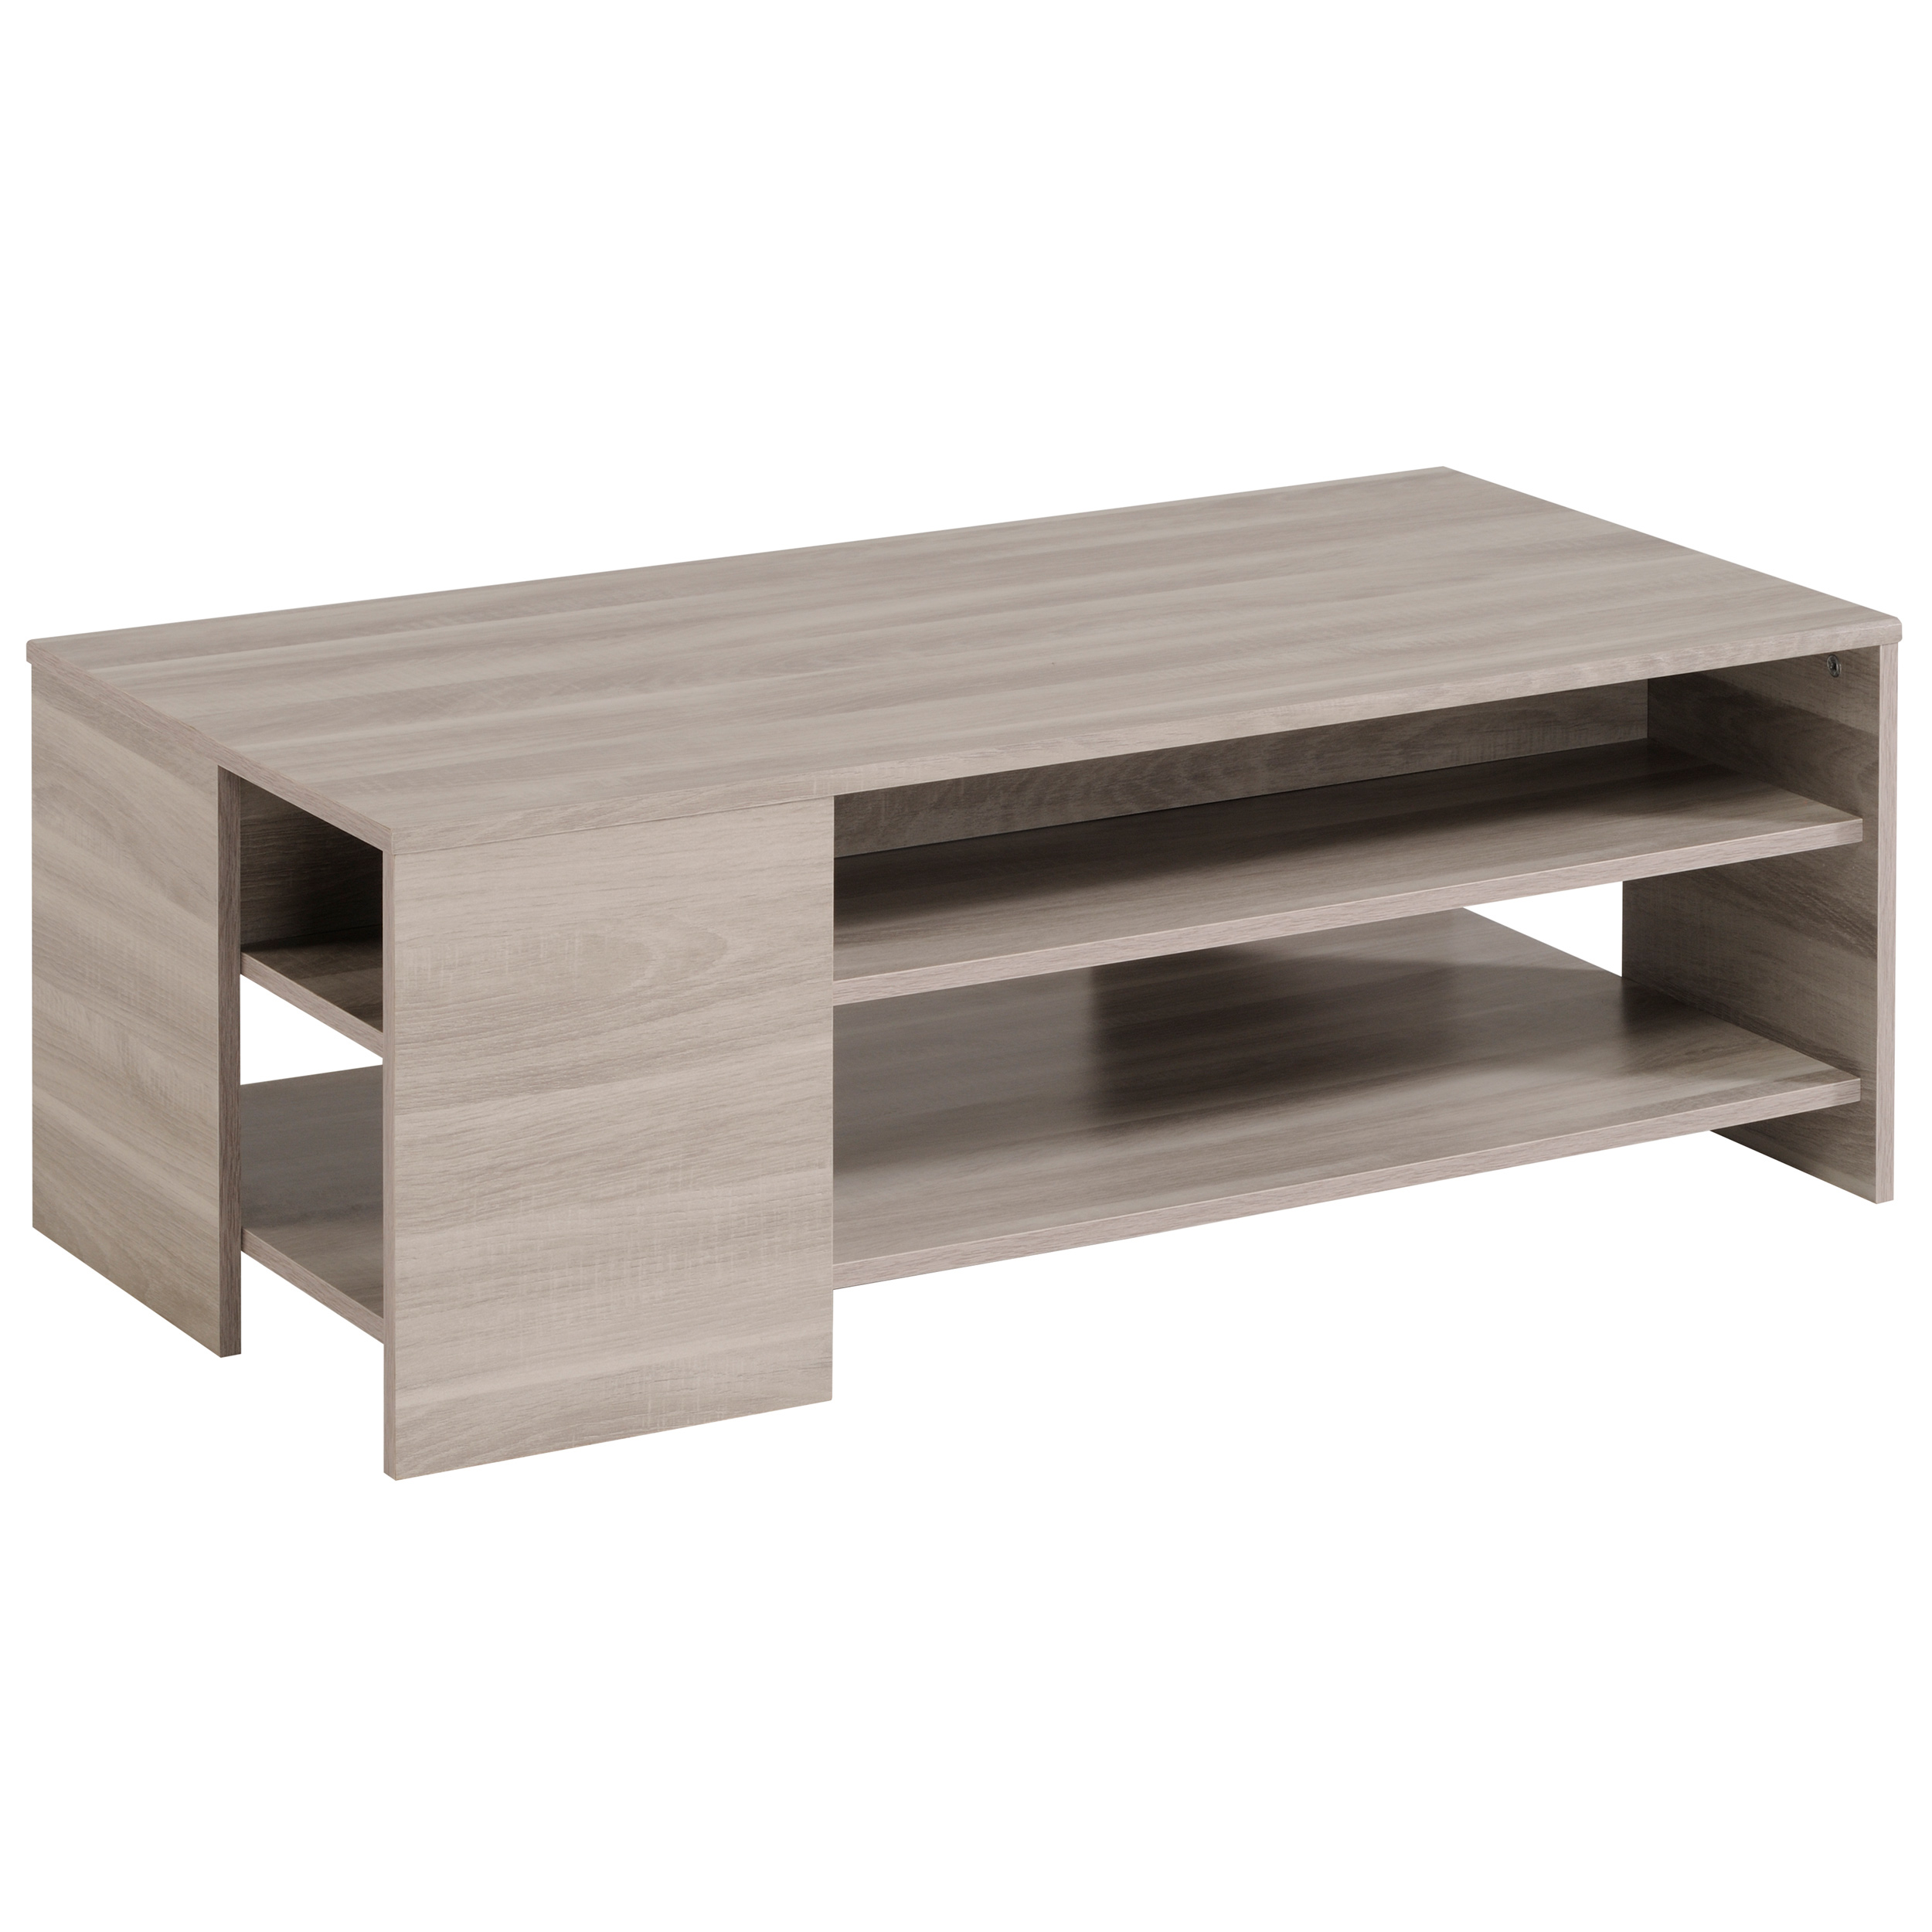 Table Basse Contemporaine Rectangulaire Chene Marbre Jeremy